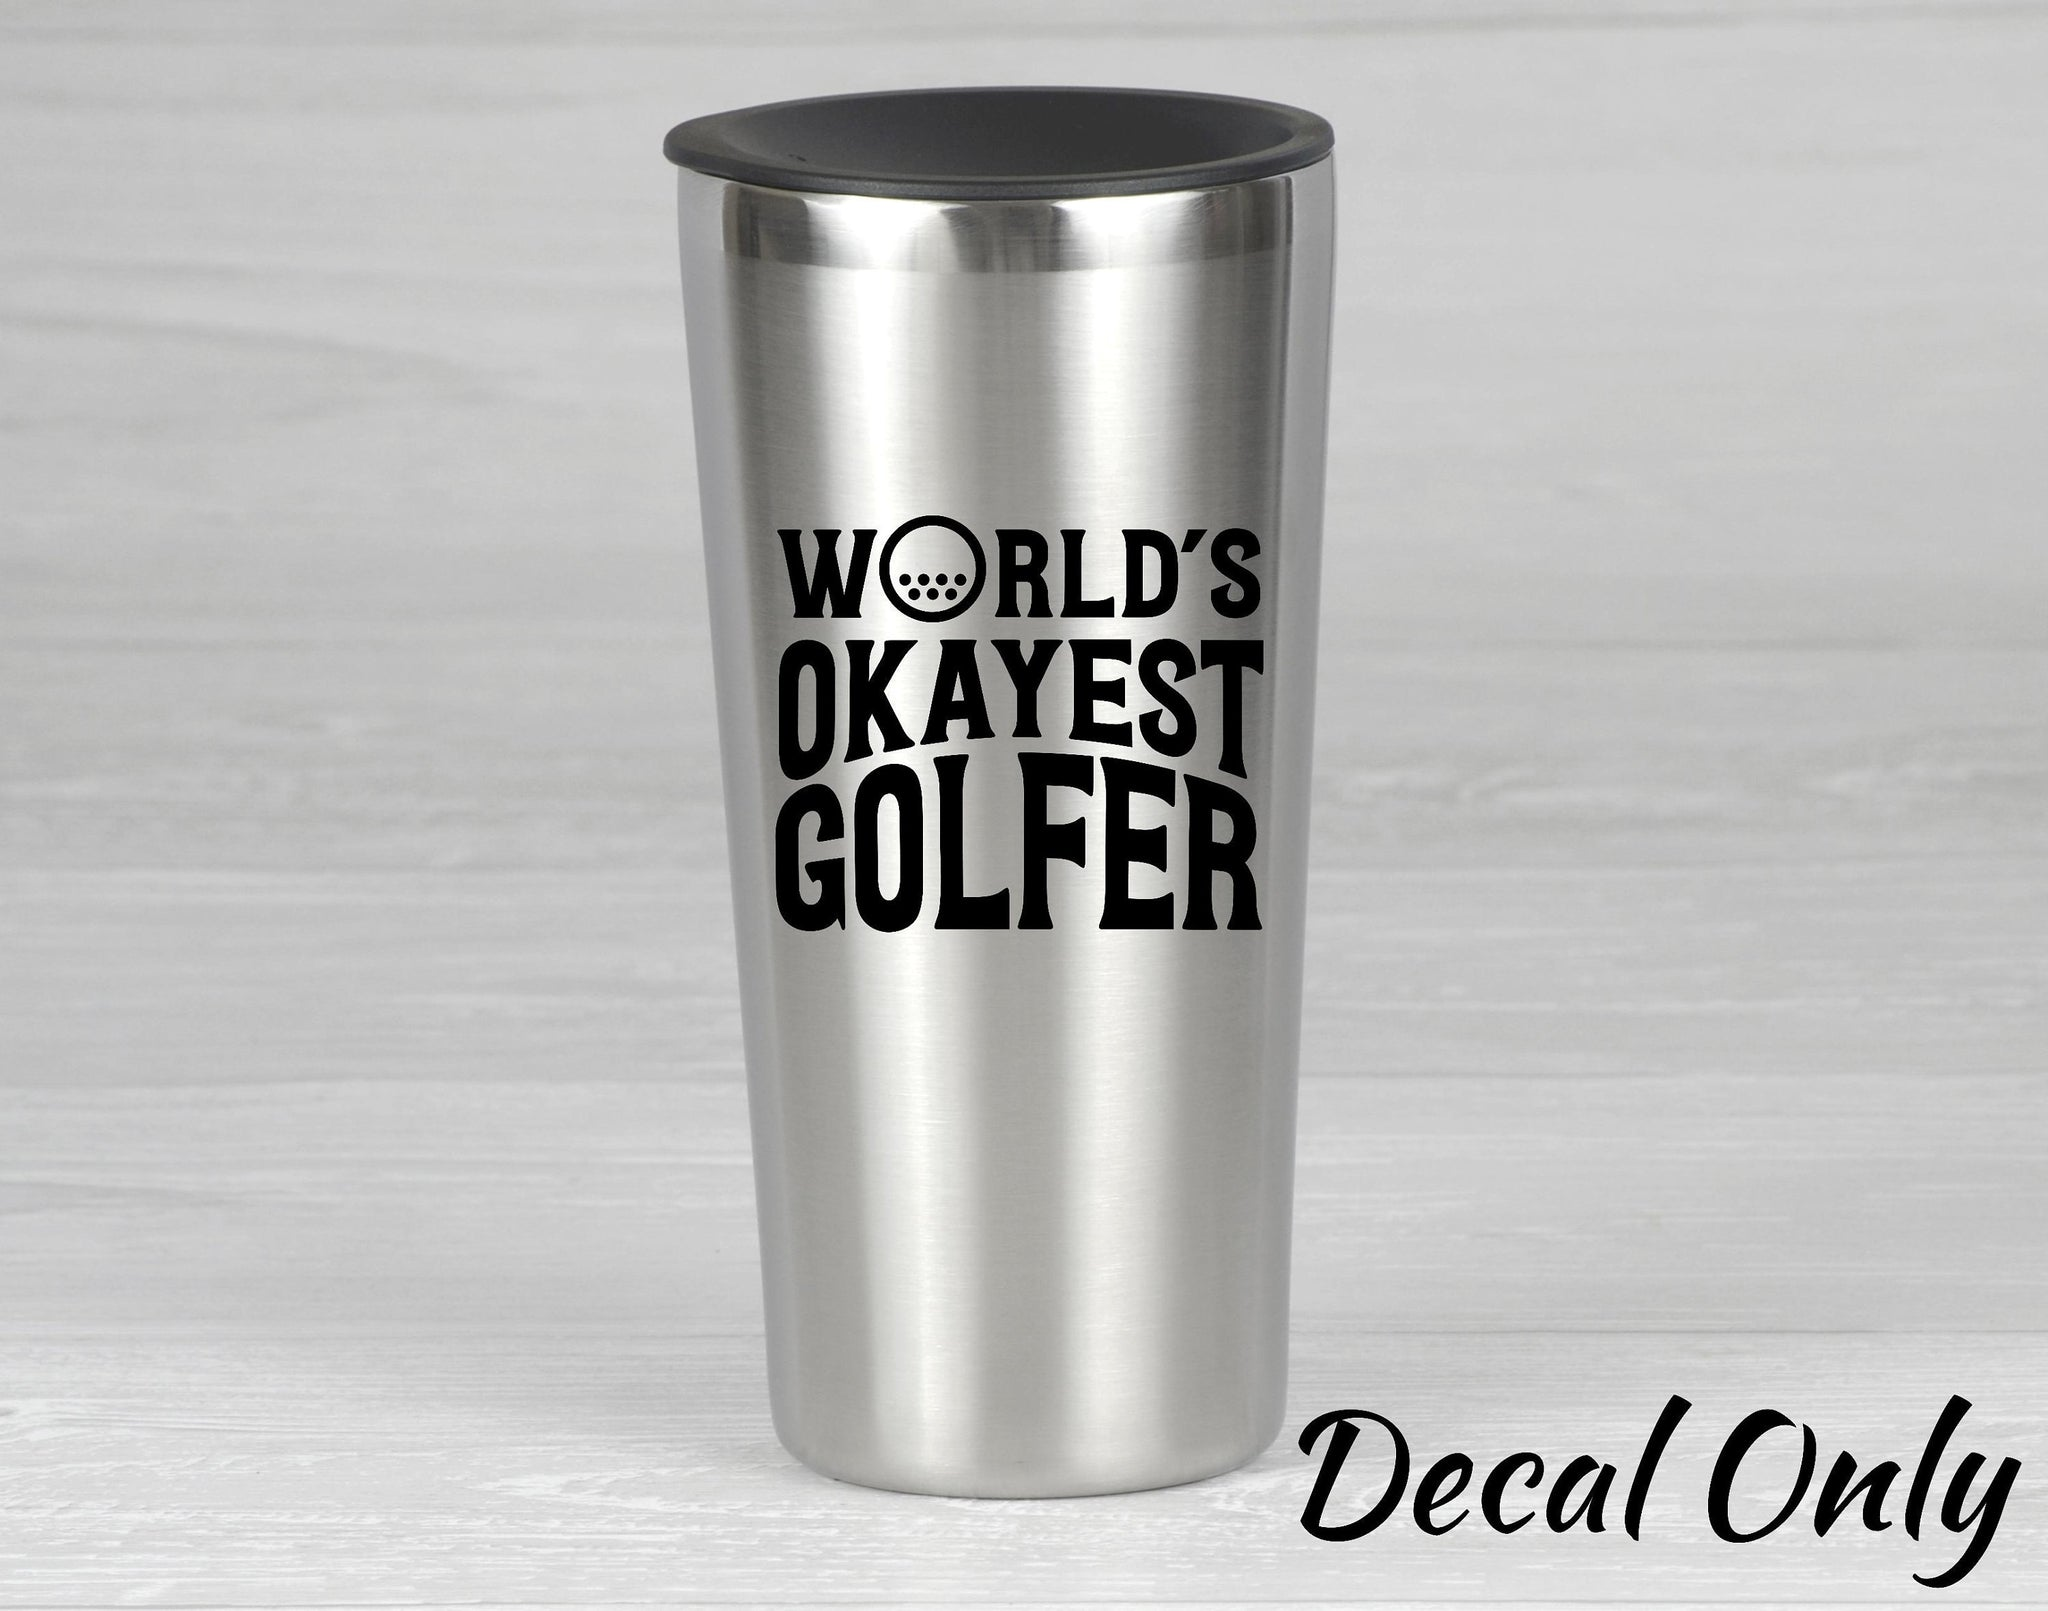 World's Okayest Golfer Vinyl Decal Sticker